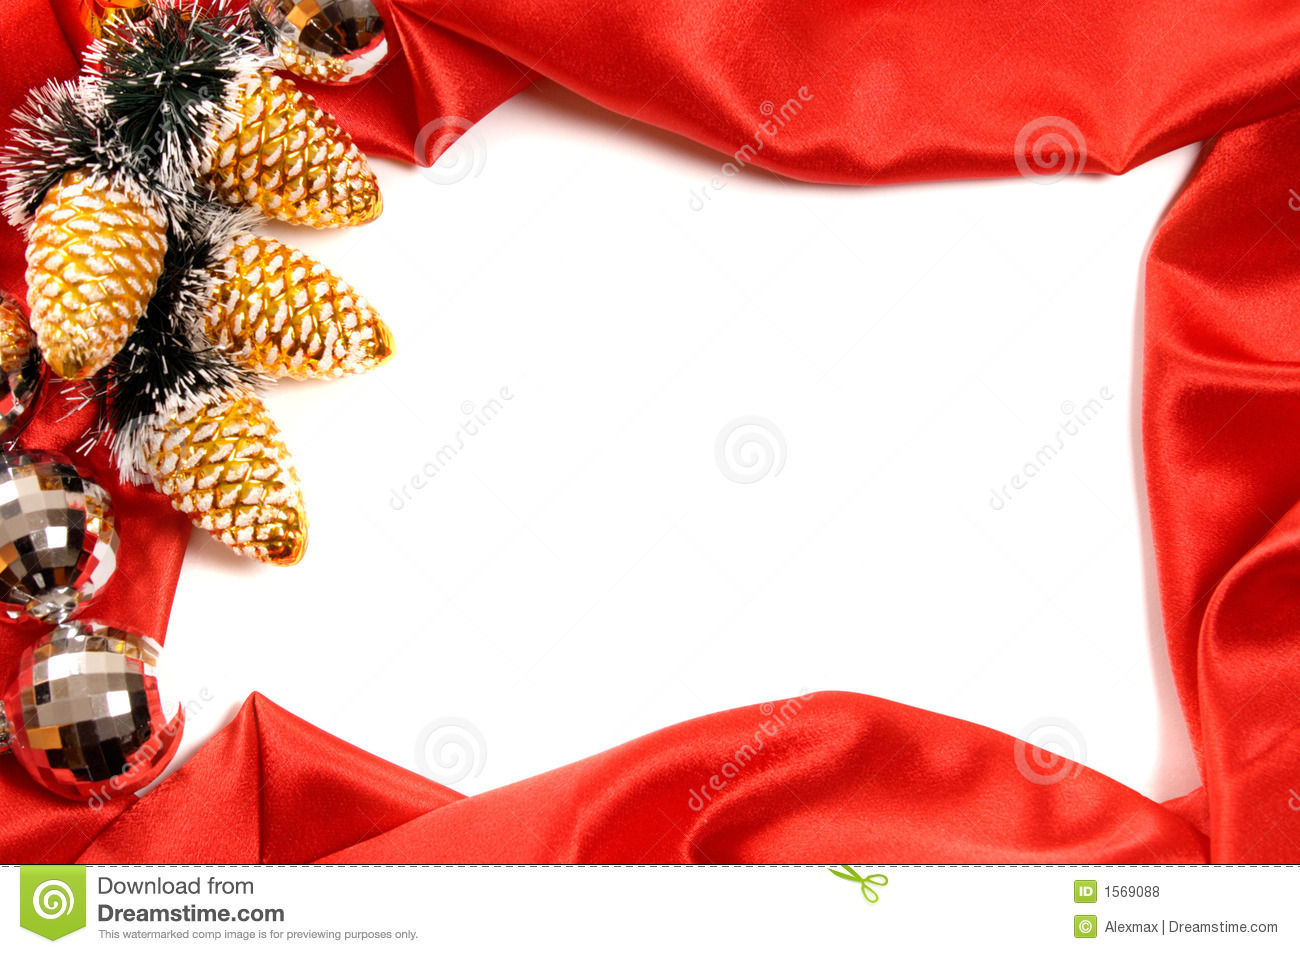 christmas frame stock photo. image of golden, lovely, decorative